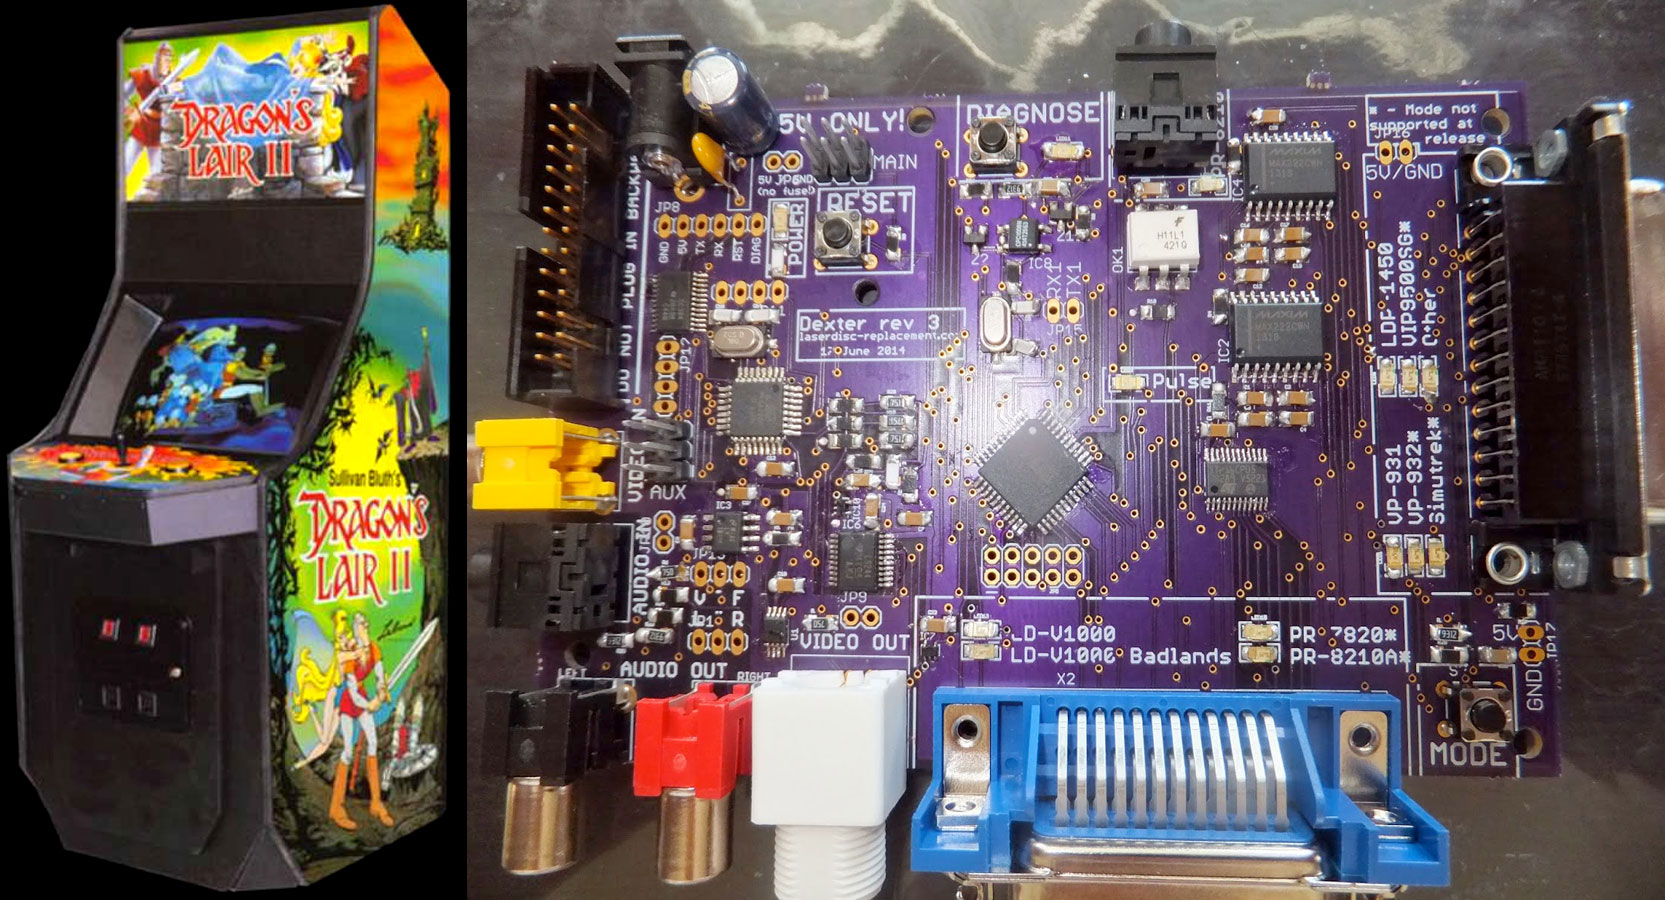 dexter brings solid state reliability to arcade games employing